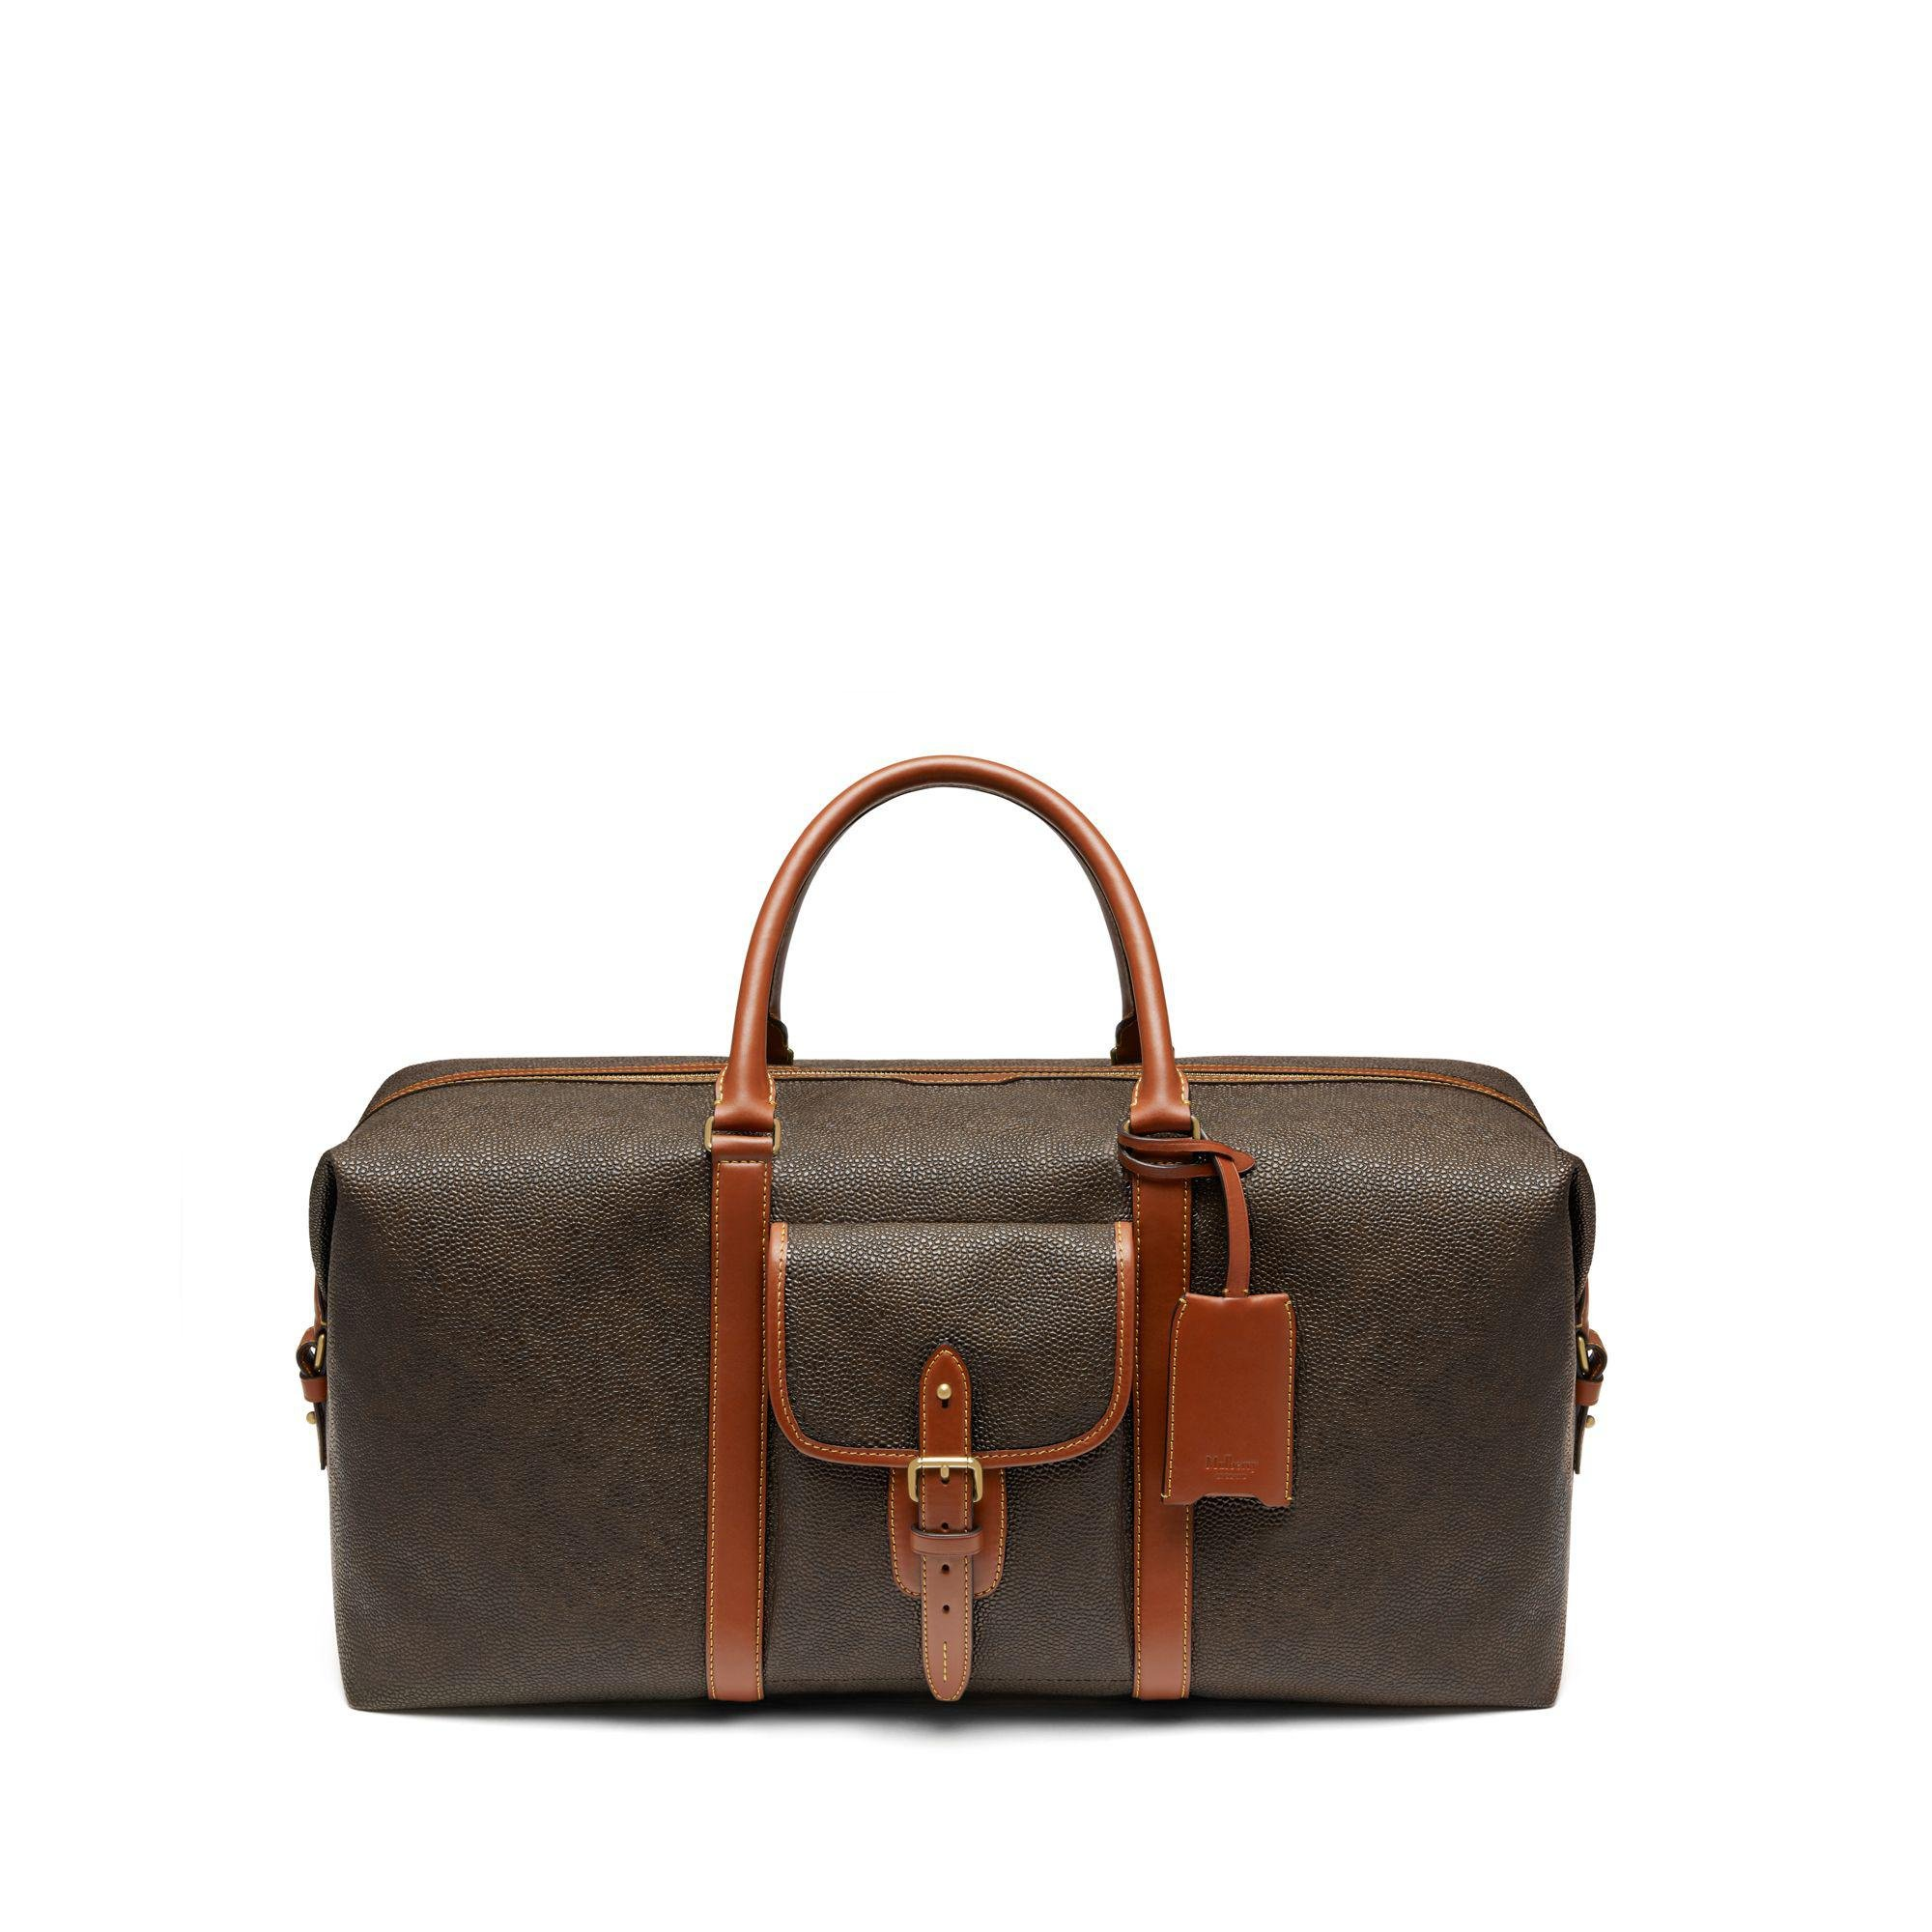 c061518685 Lyst - Mulberry Large Heritage Weekender In Mole And Cognac ...